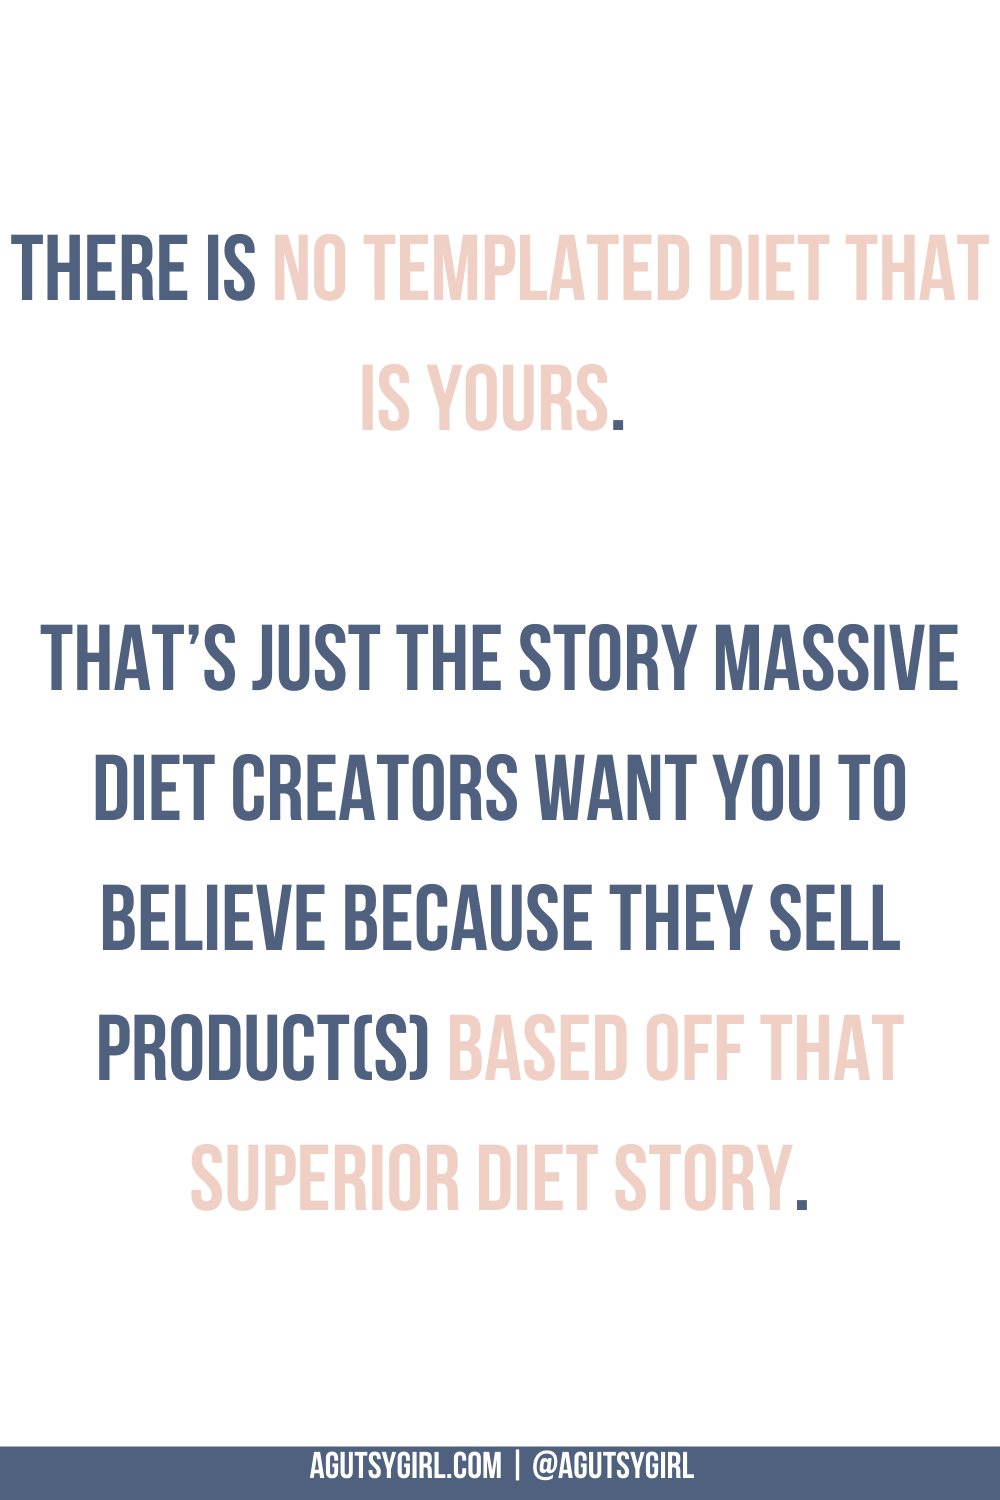 create your own diet There is no templated diet that is yours quote via agutsygirl.com #diets #guthealth #g